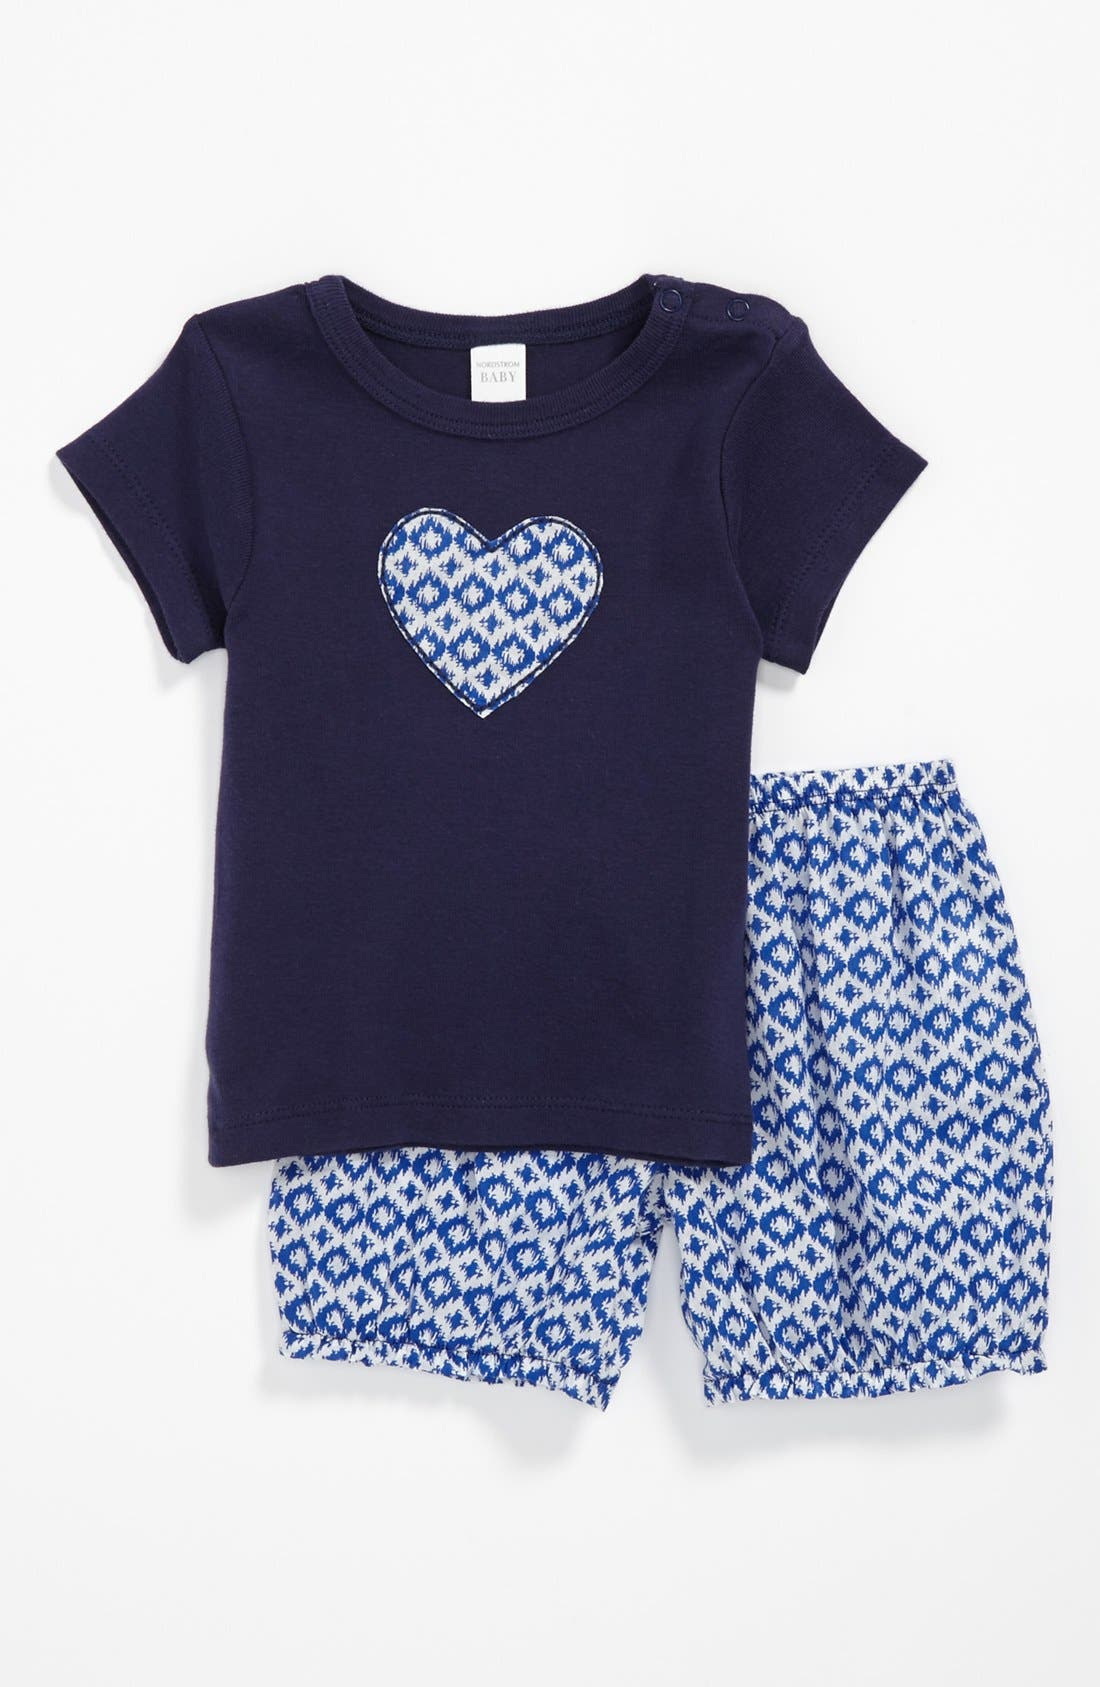 Alternate Image 1 Selected - Nordstrom Baby T-Shirt & Shorts (Baby Girls)